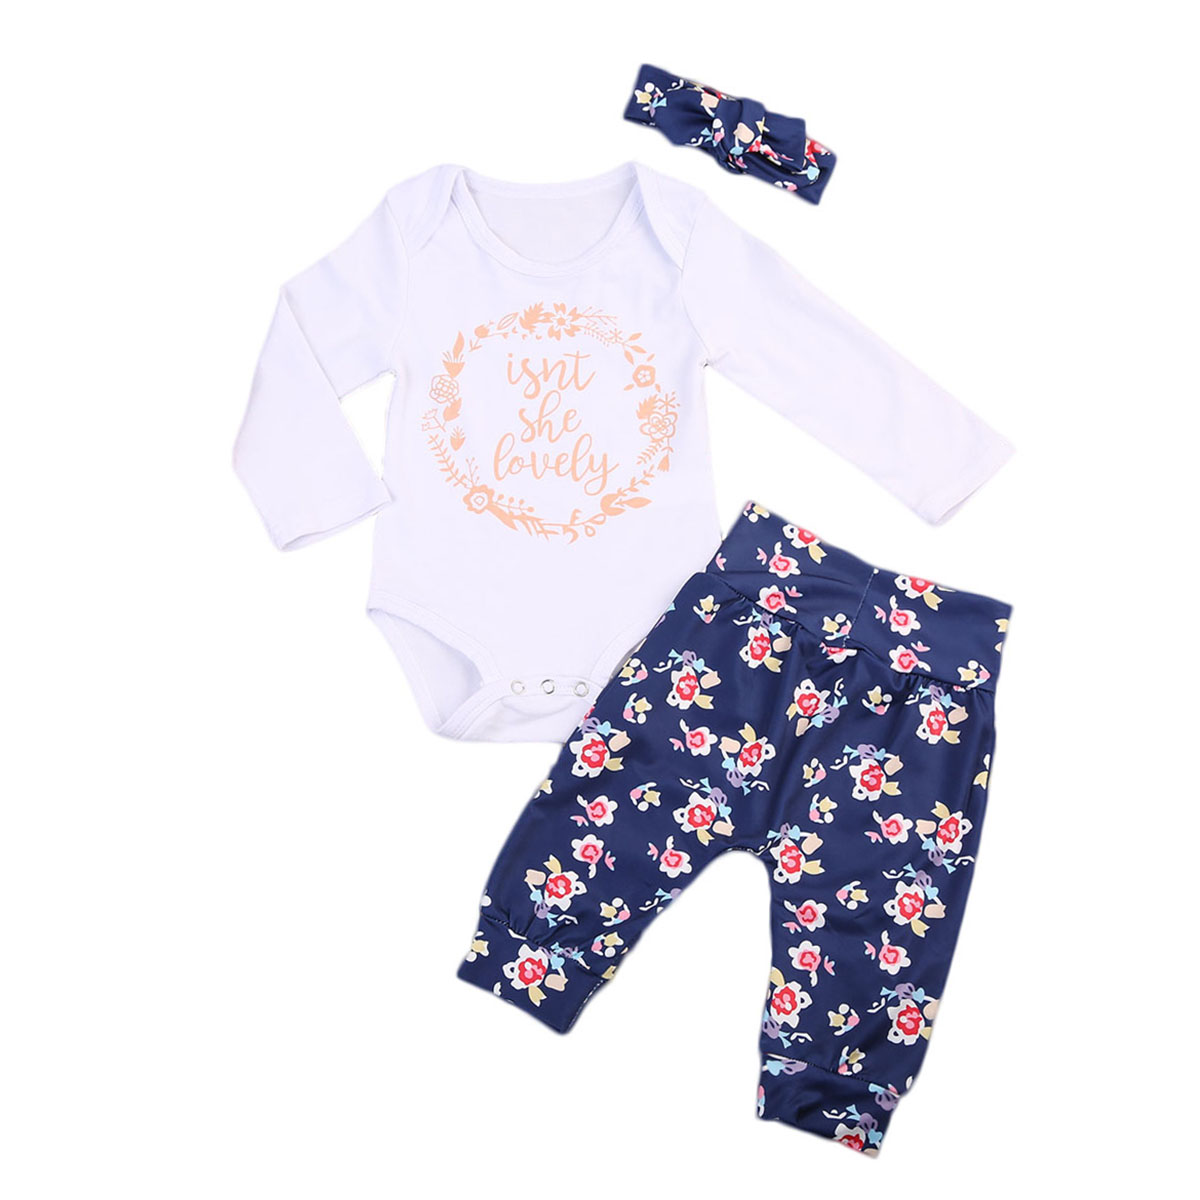 3PCS Newborn Baby Girl Clothes Set Long Sleeve Letter Print Cotton Romper Bodysuit +Floral Long Pant Headband Outfit Bebek Giyim 2017 newborn baby boy girl clothes floral infant bebes romper bodysuit and bloomers bottom 2pcs outfit bebek giyim clothing